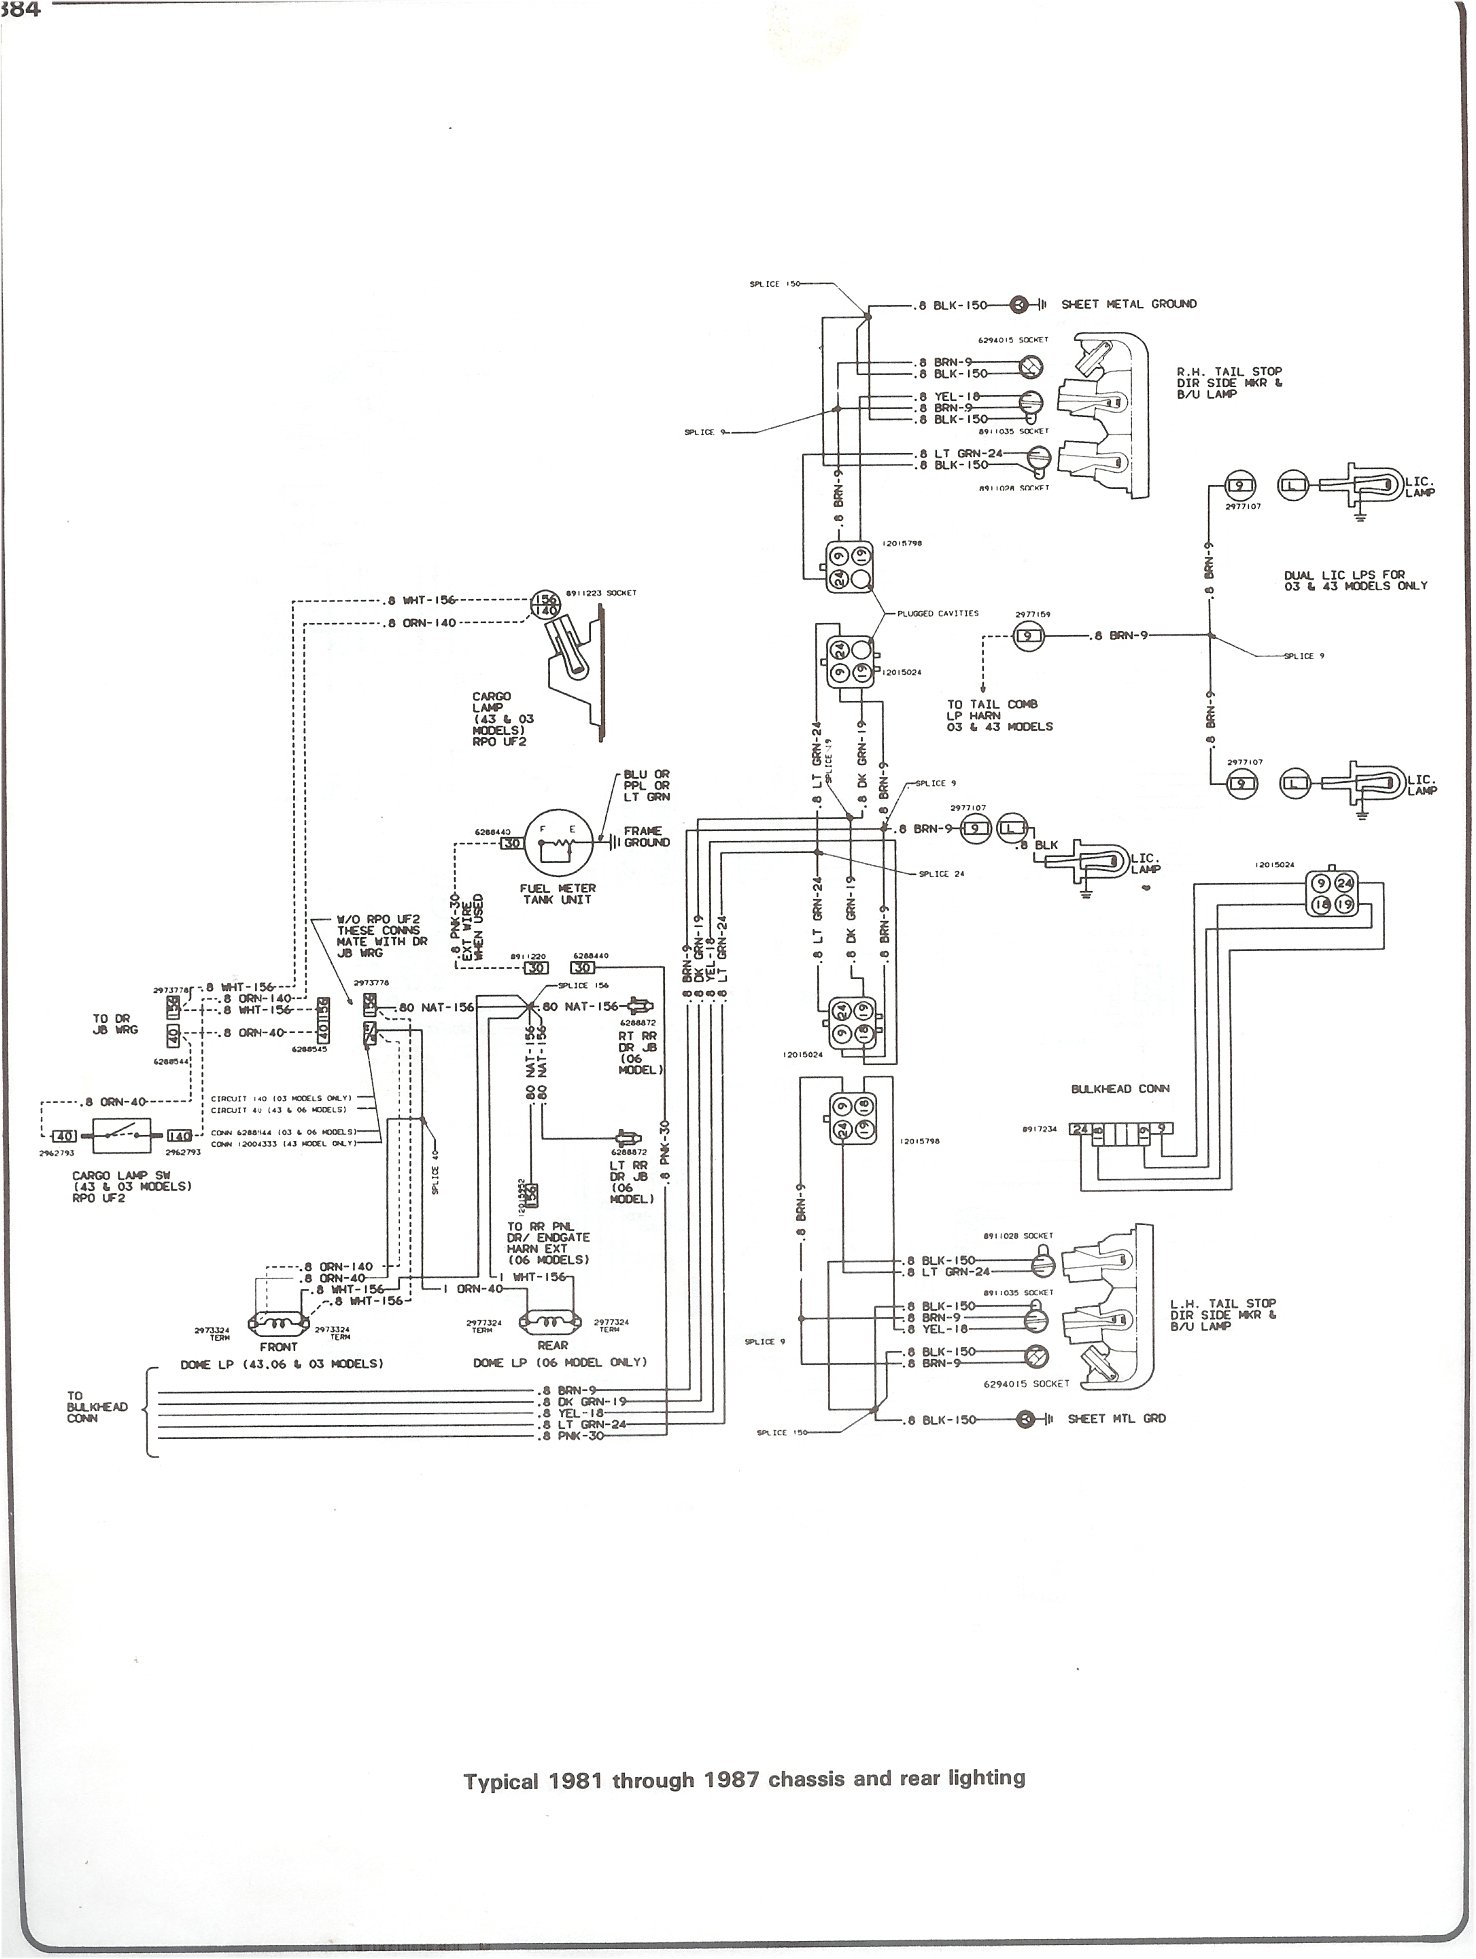 gm solenoid wiring 1977 auto electrical wiring diagram u2022 rh 6weeks co uk